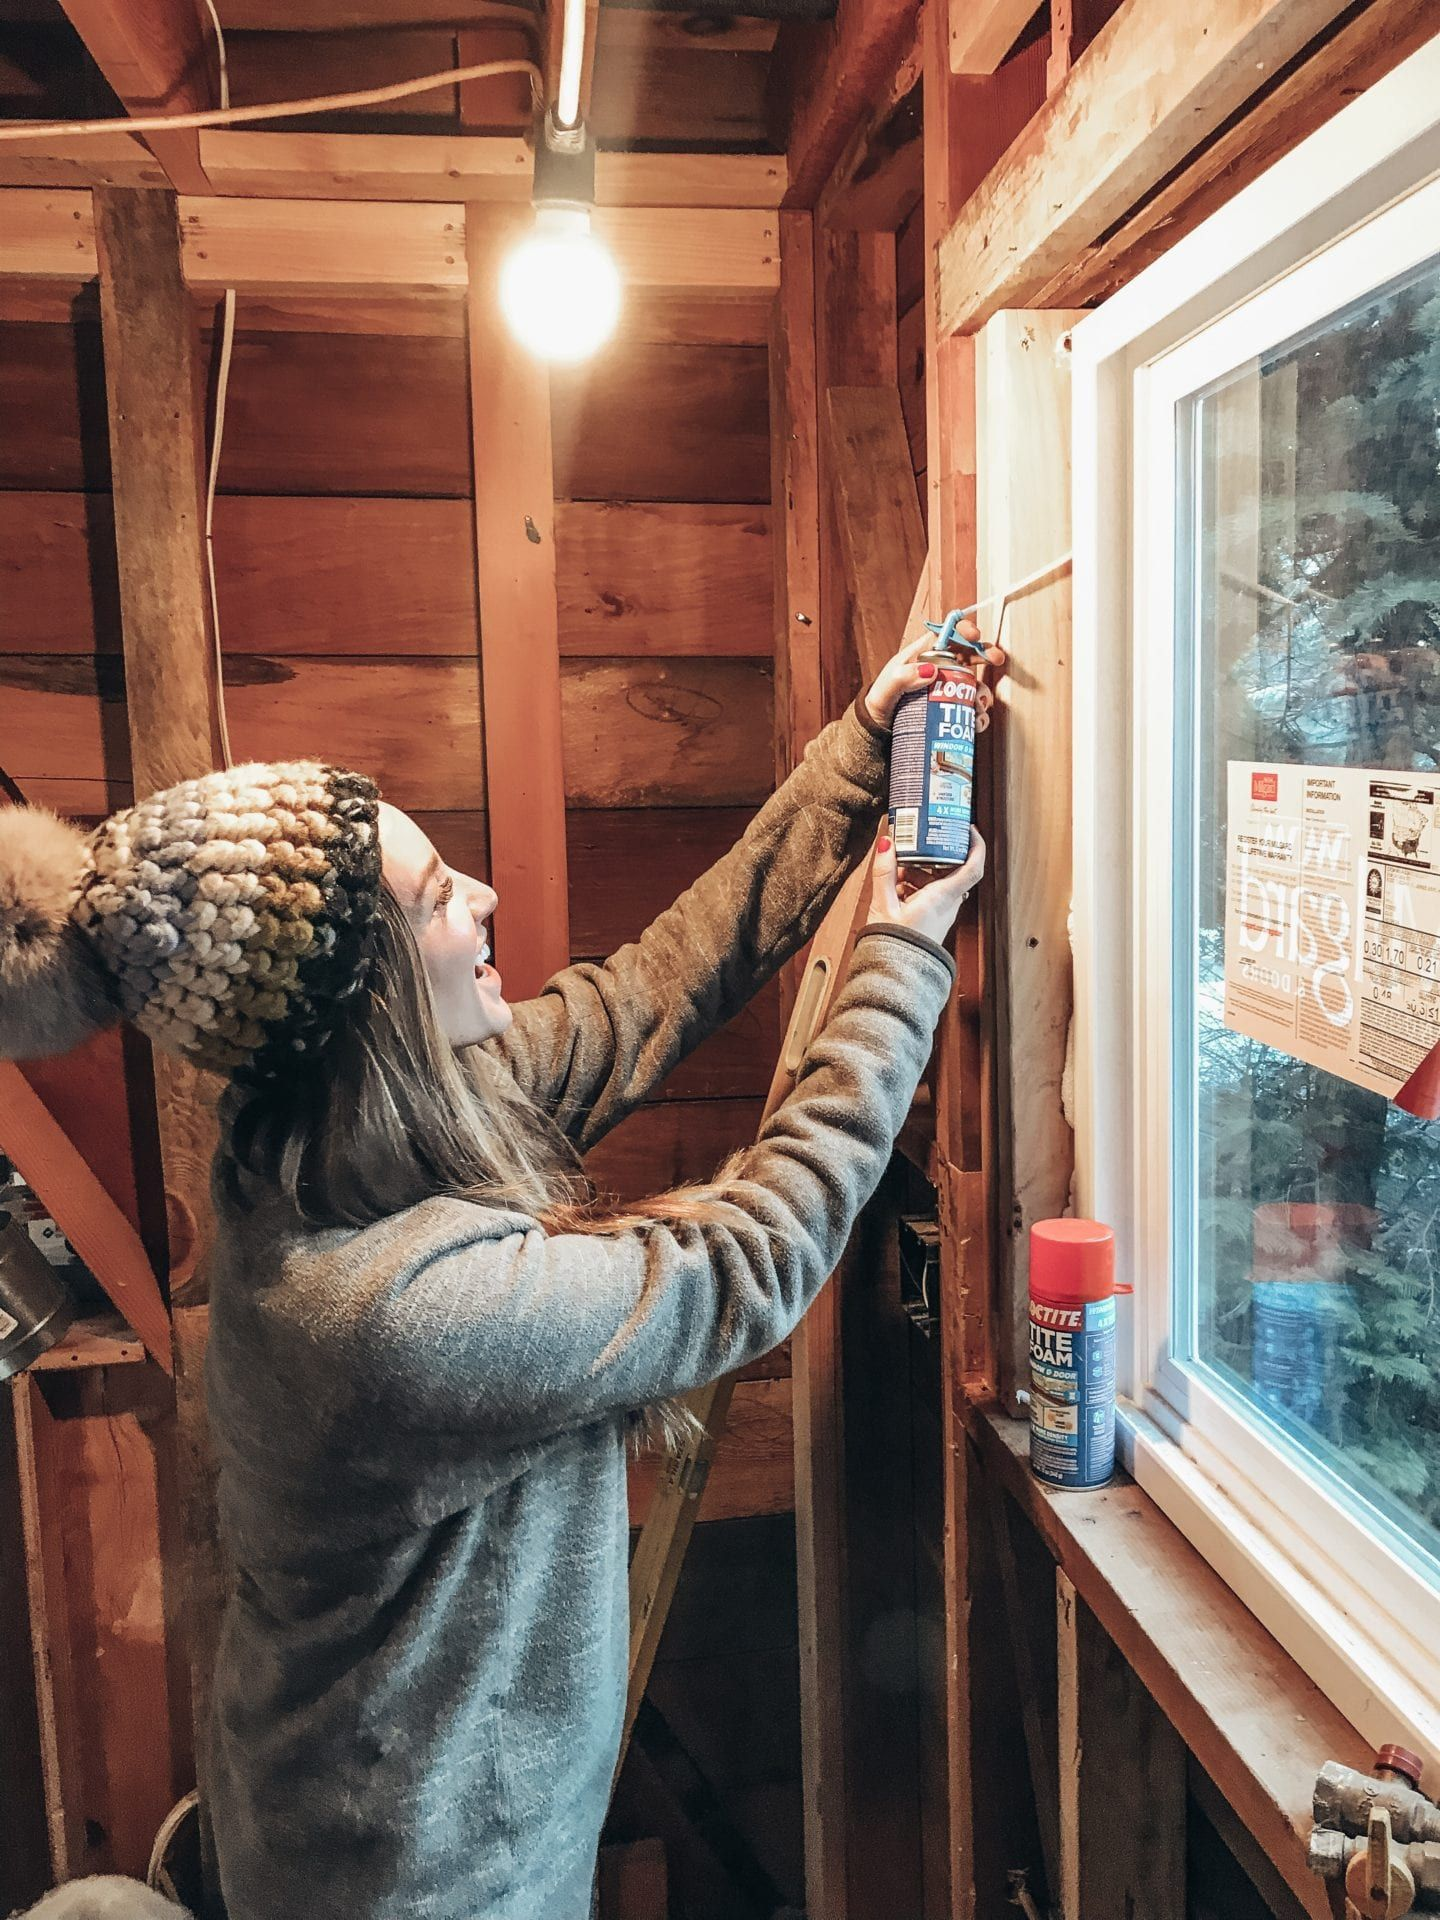 How To Winterize Windows Building a new home, Protecting